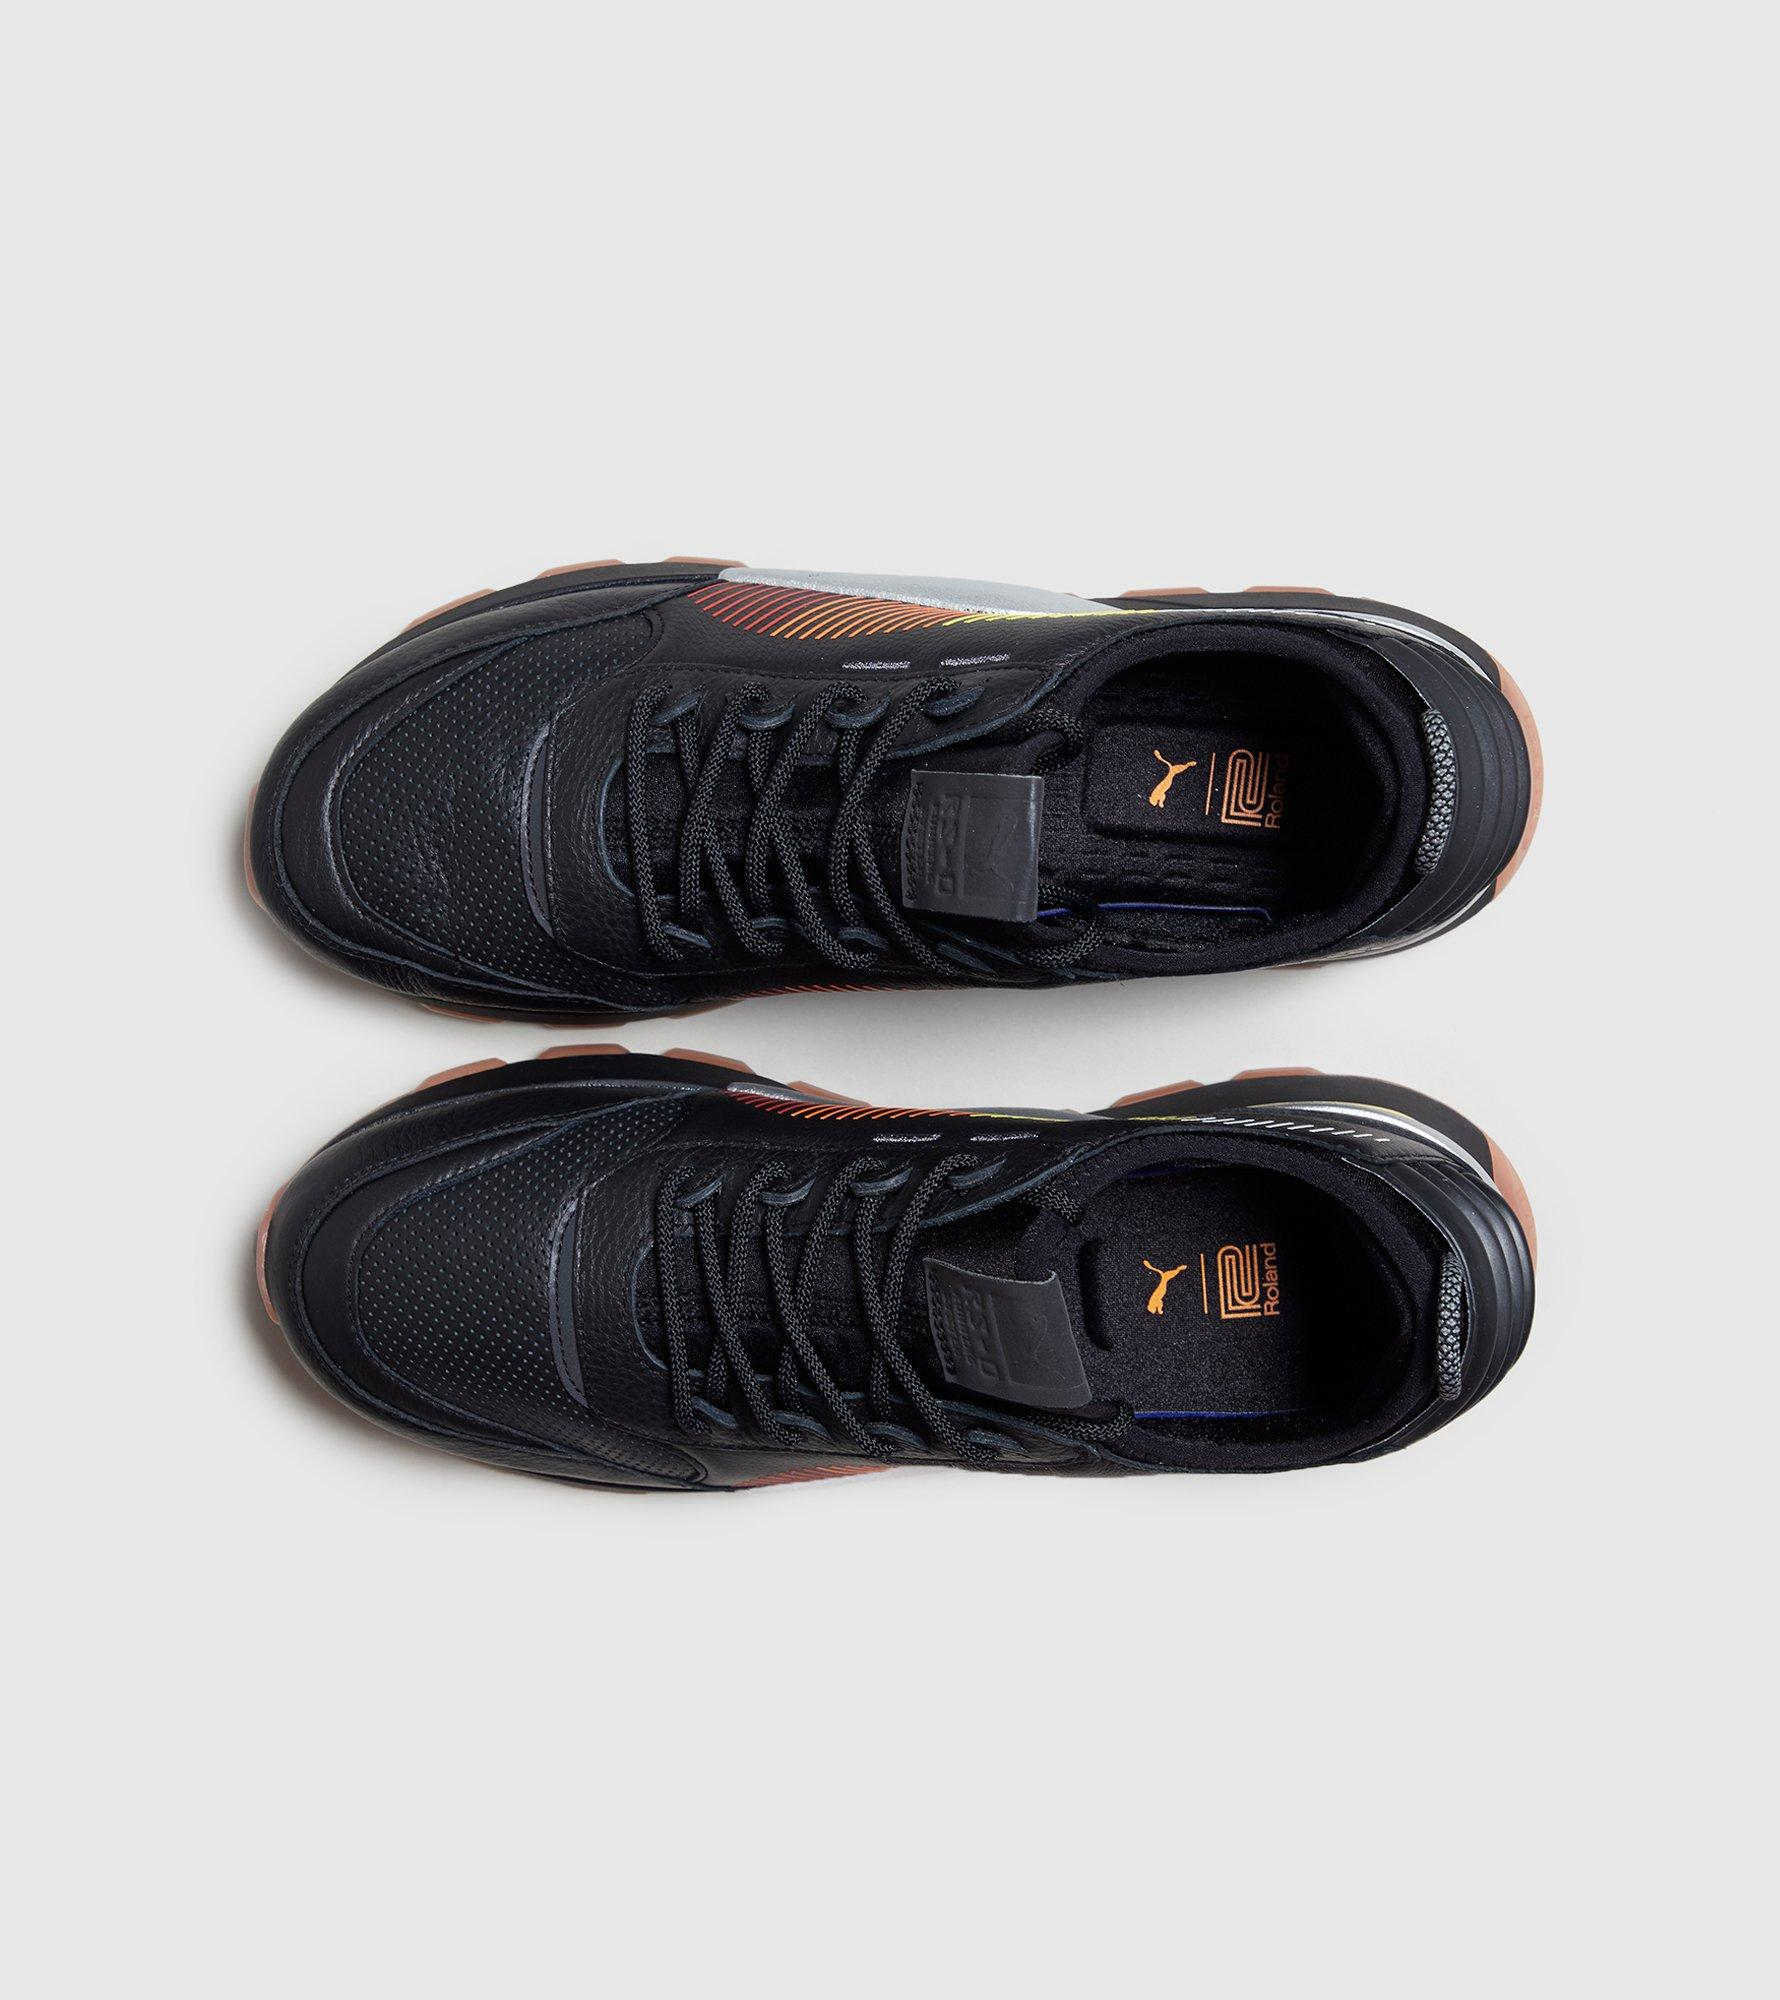 Lyst - PUMA X Roland Tr-808 Rs-0 in Black for Men 8149def40